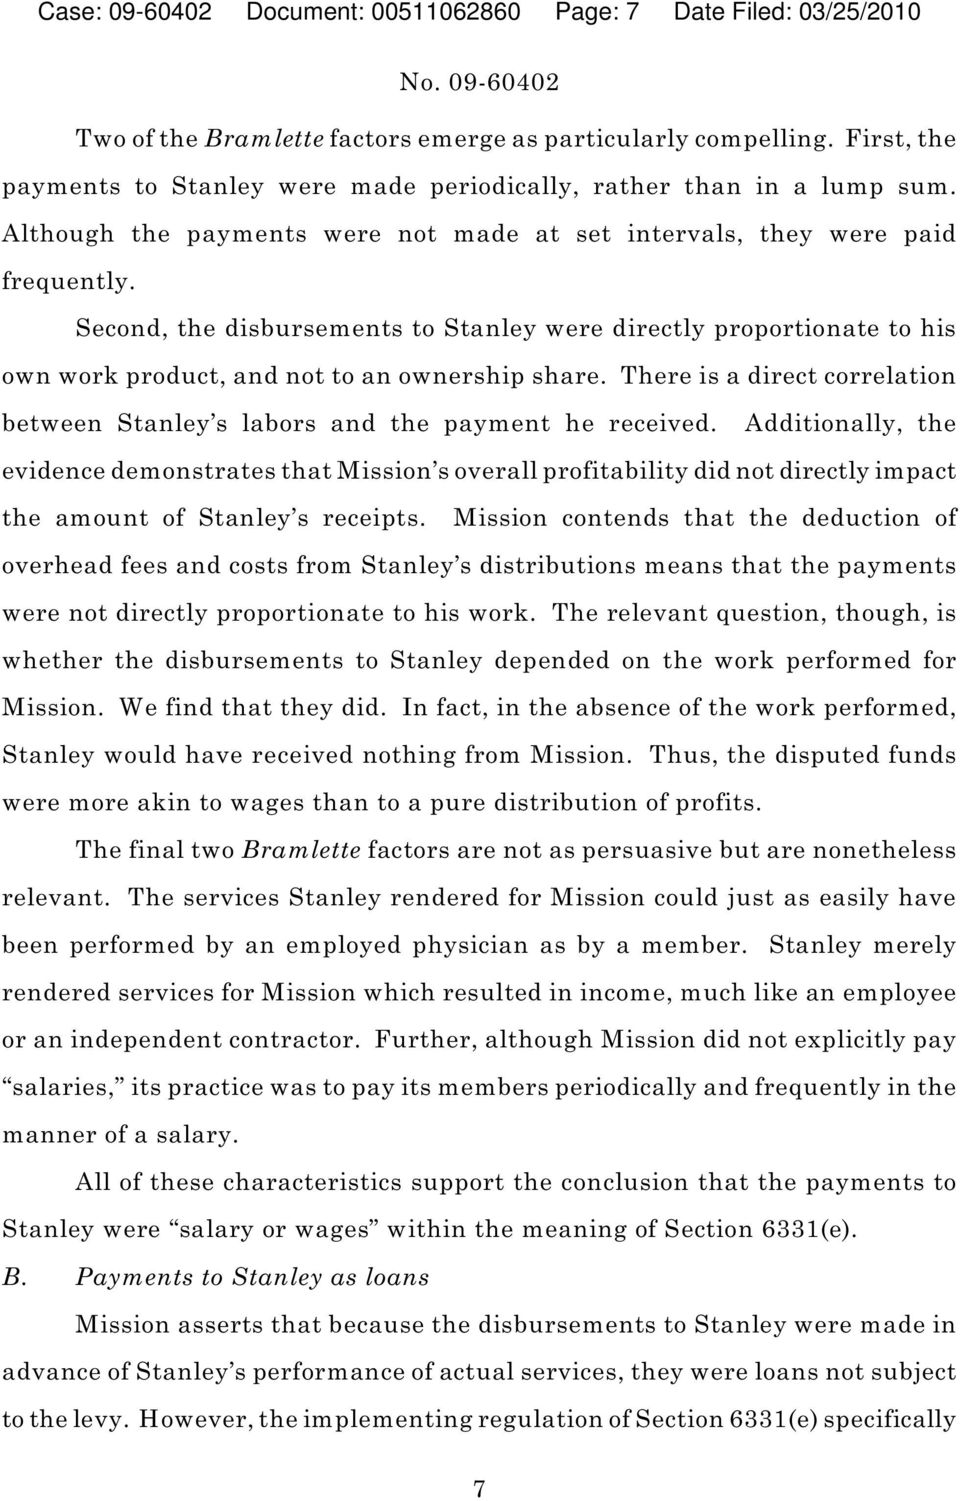 Second, the disbursements to Stanley were directly proportionate to his own work product, and not to an ownership share.